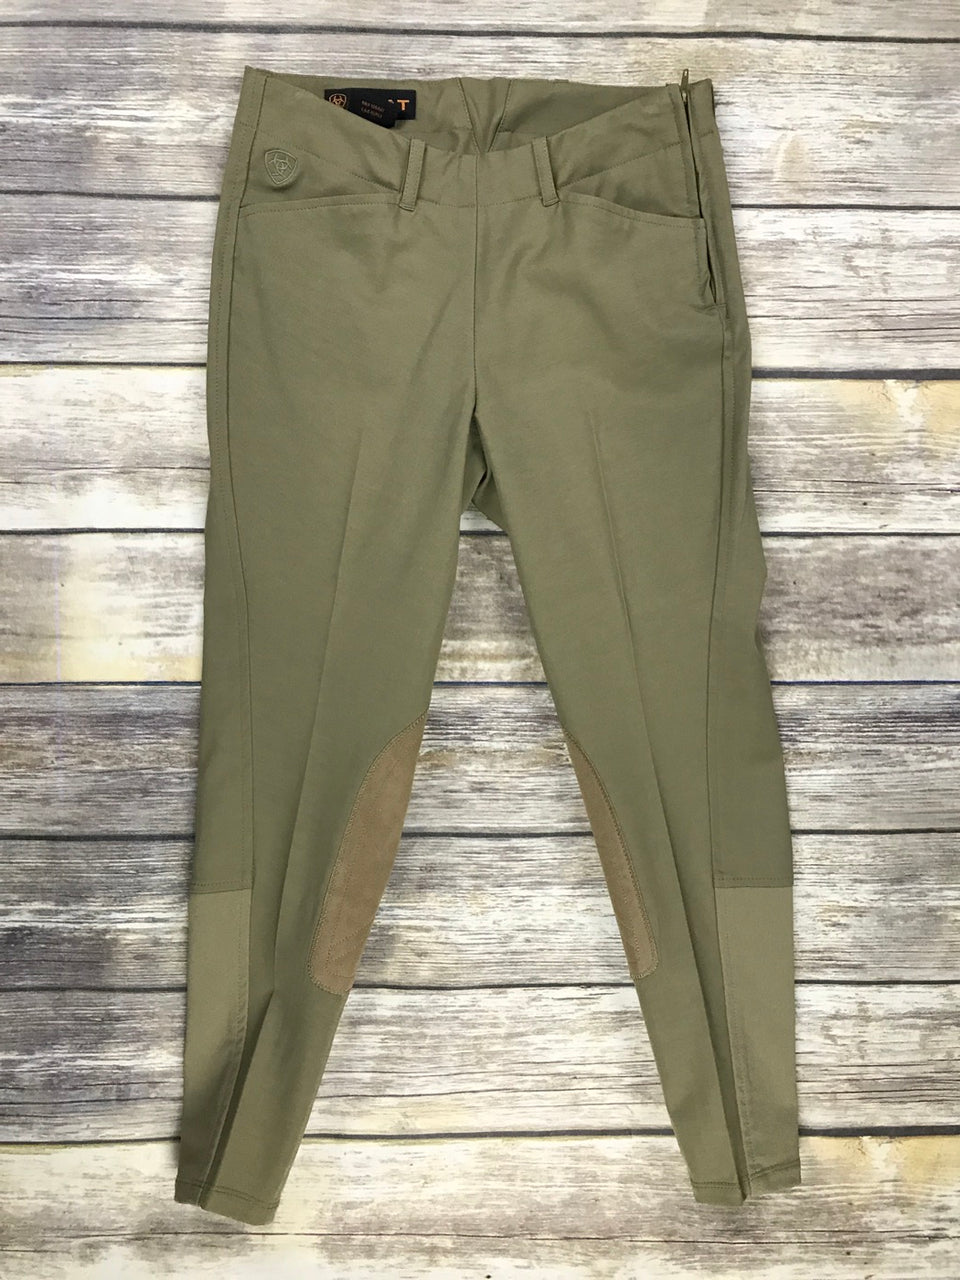 Ariat Side Zip Breeches in Green Beige - Children's 12